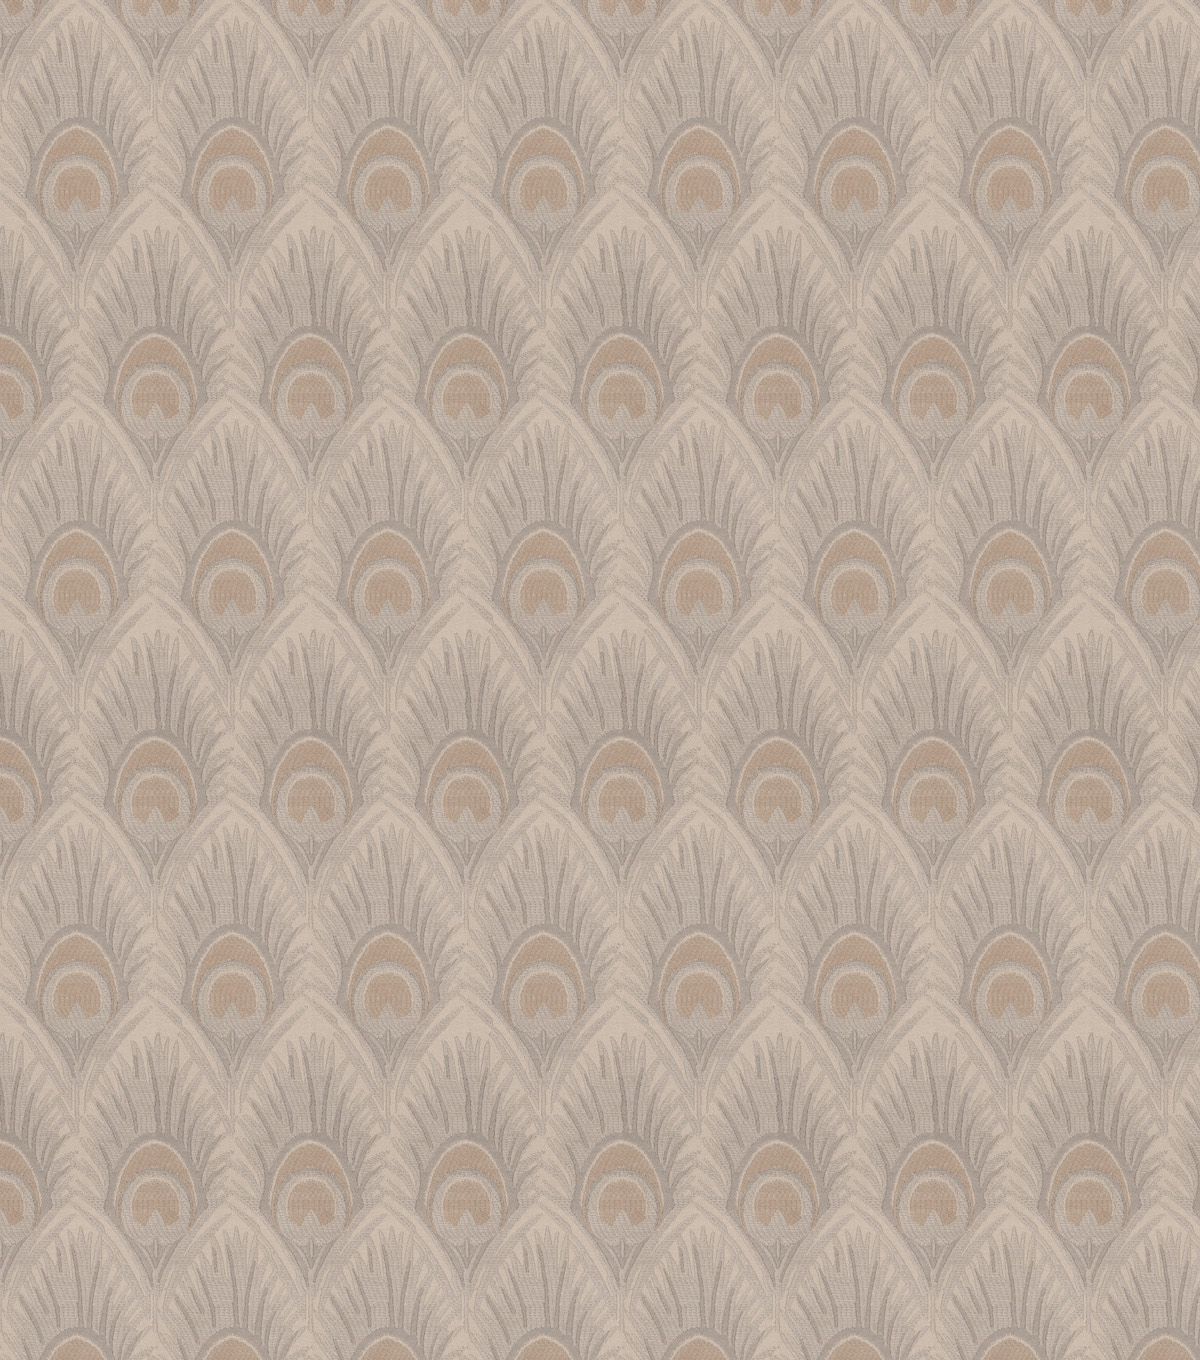 Eaton Square Upholstery Fabric 54\u0022-Feather Rot/Natural